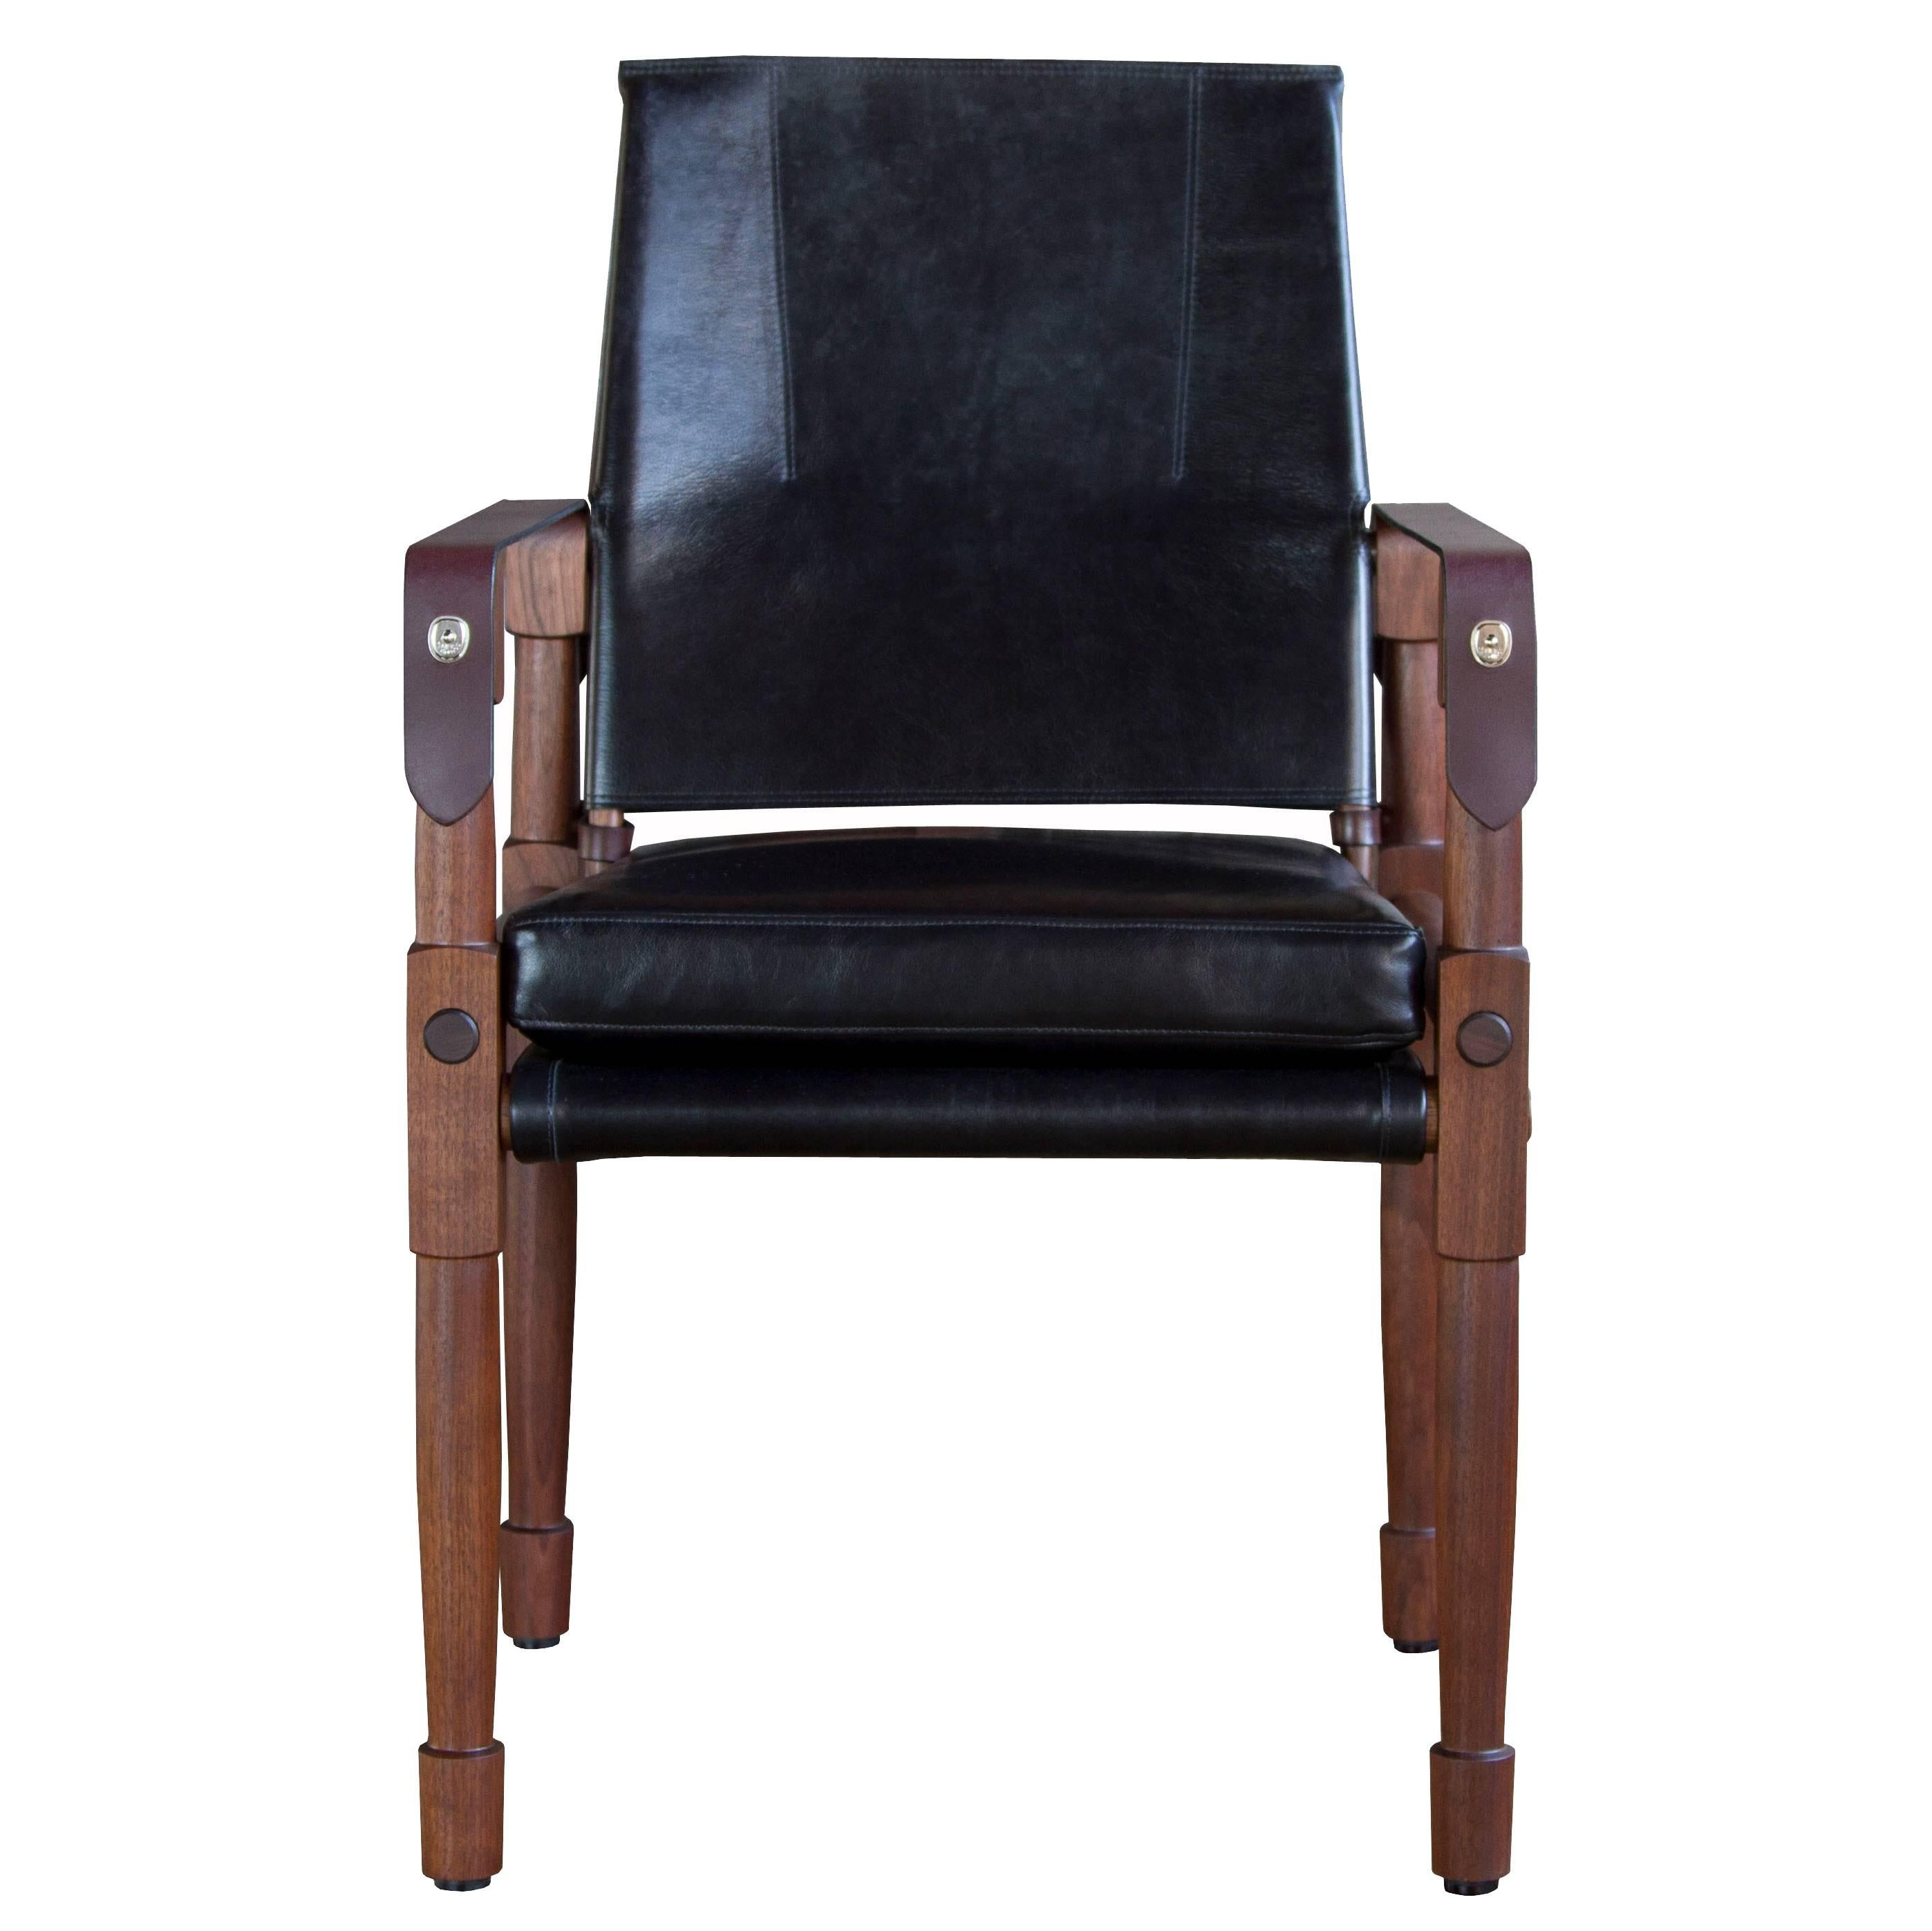 Chatwin Dining Chair - handcrafted by Richard Wrightman Design